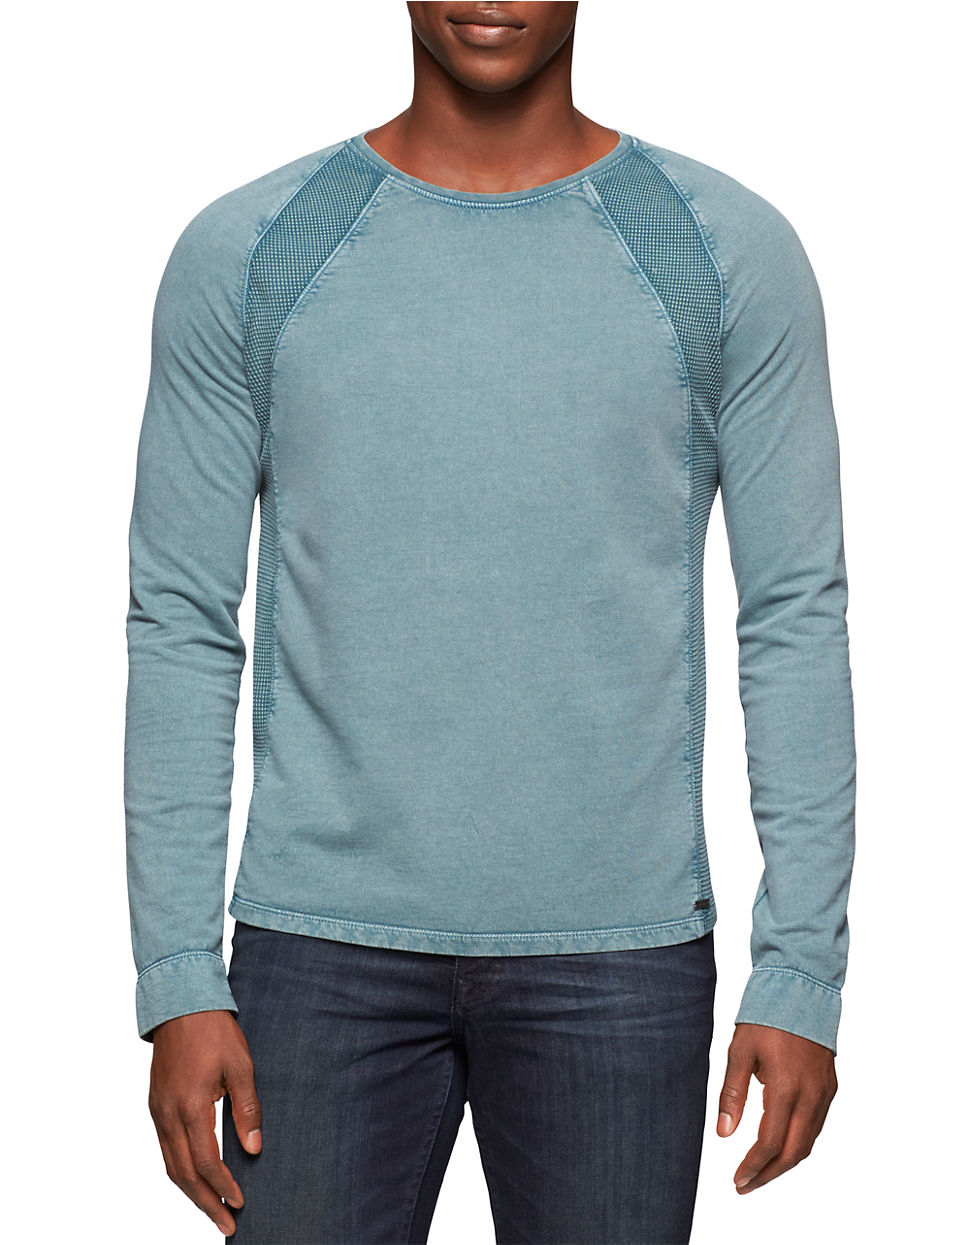 calvin klein jeans acid wash pullover in blue for men blue dust lyst. Black Bedroom Furniture Sets. Home Design Ideas